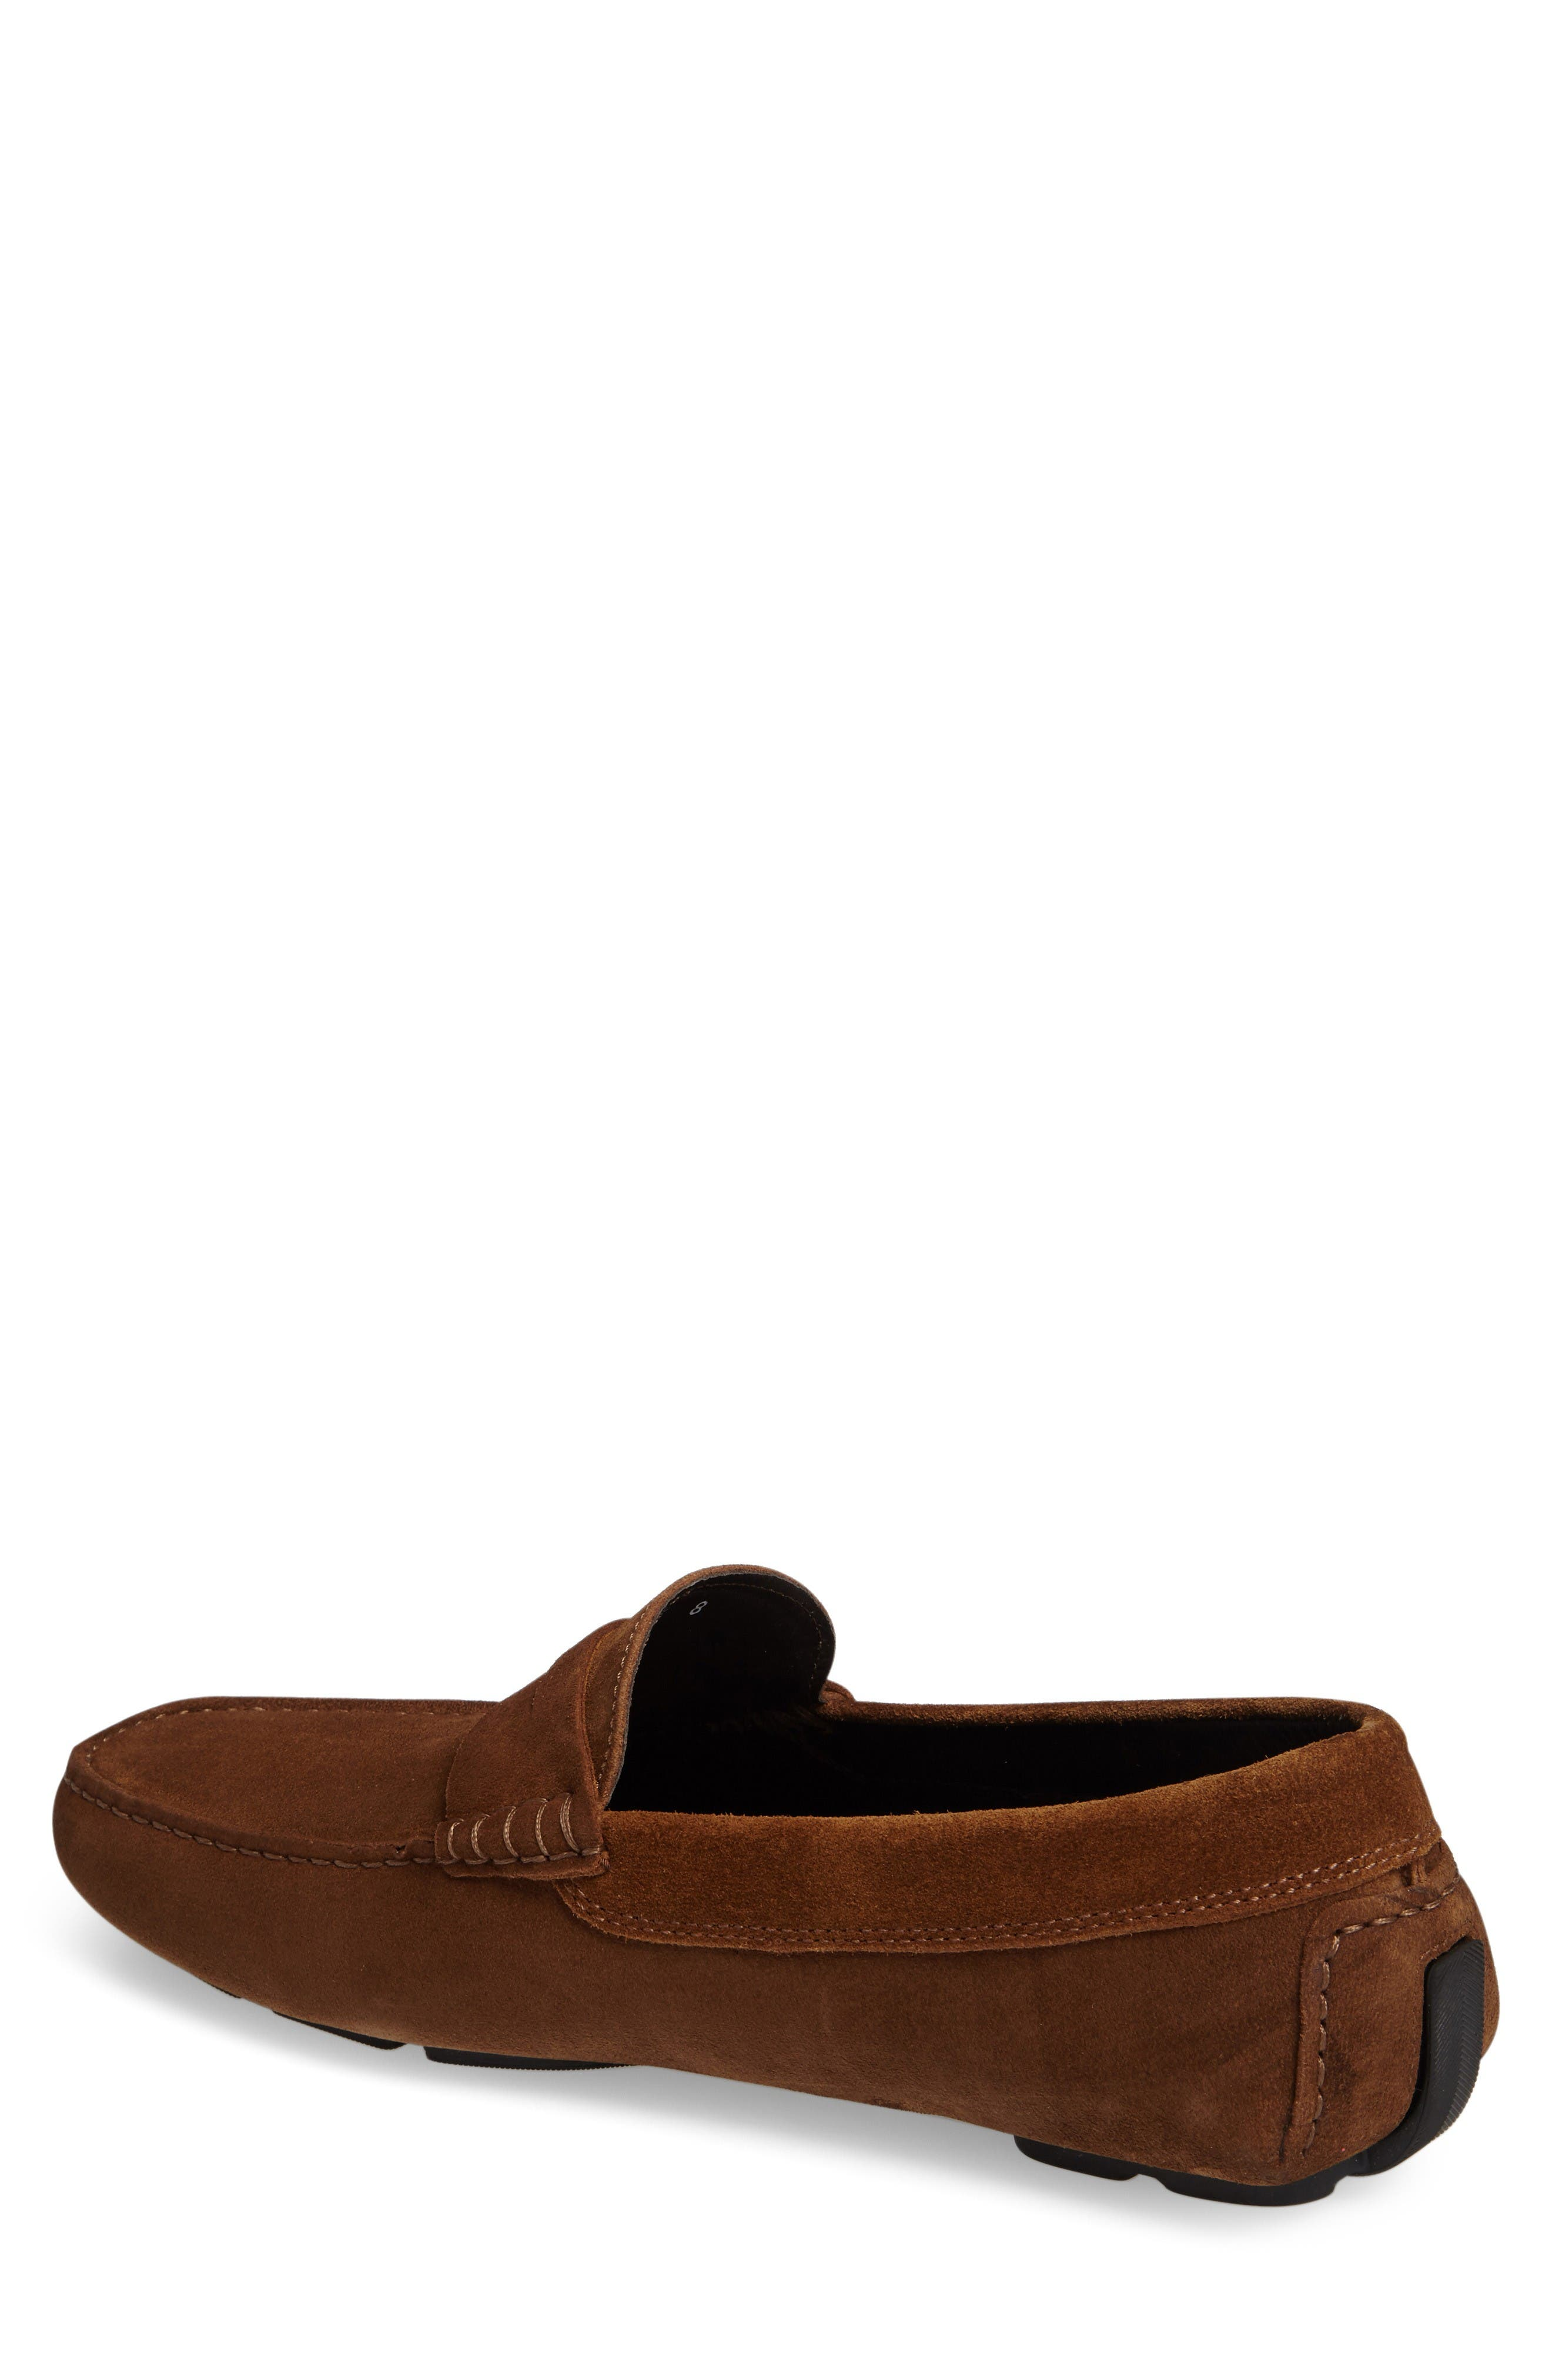 Mitchum Driving Shoe,                             Alternate thumbnail 2, color,                             Brown/ Brown Suede